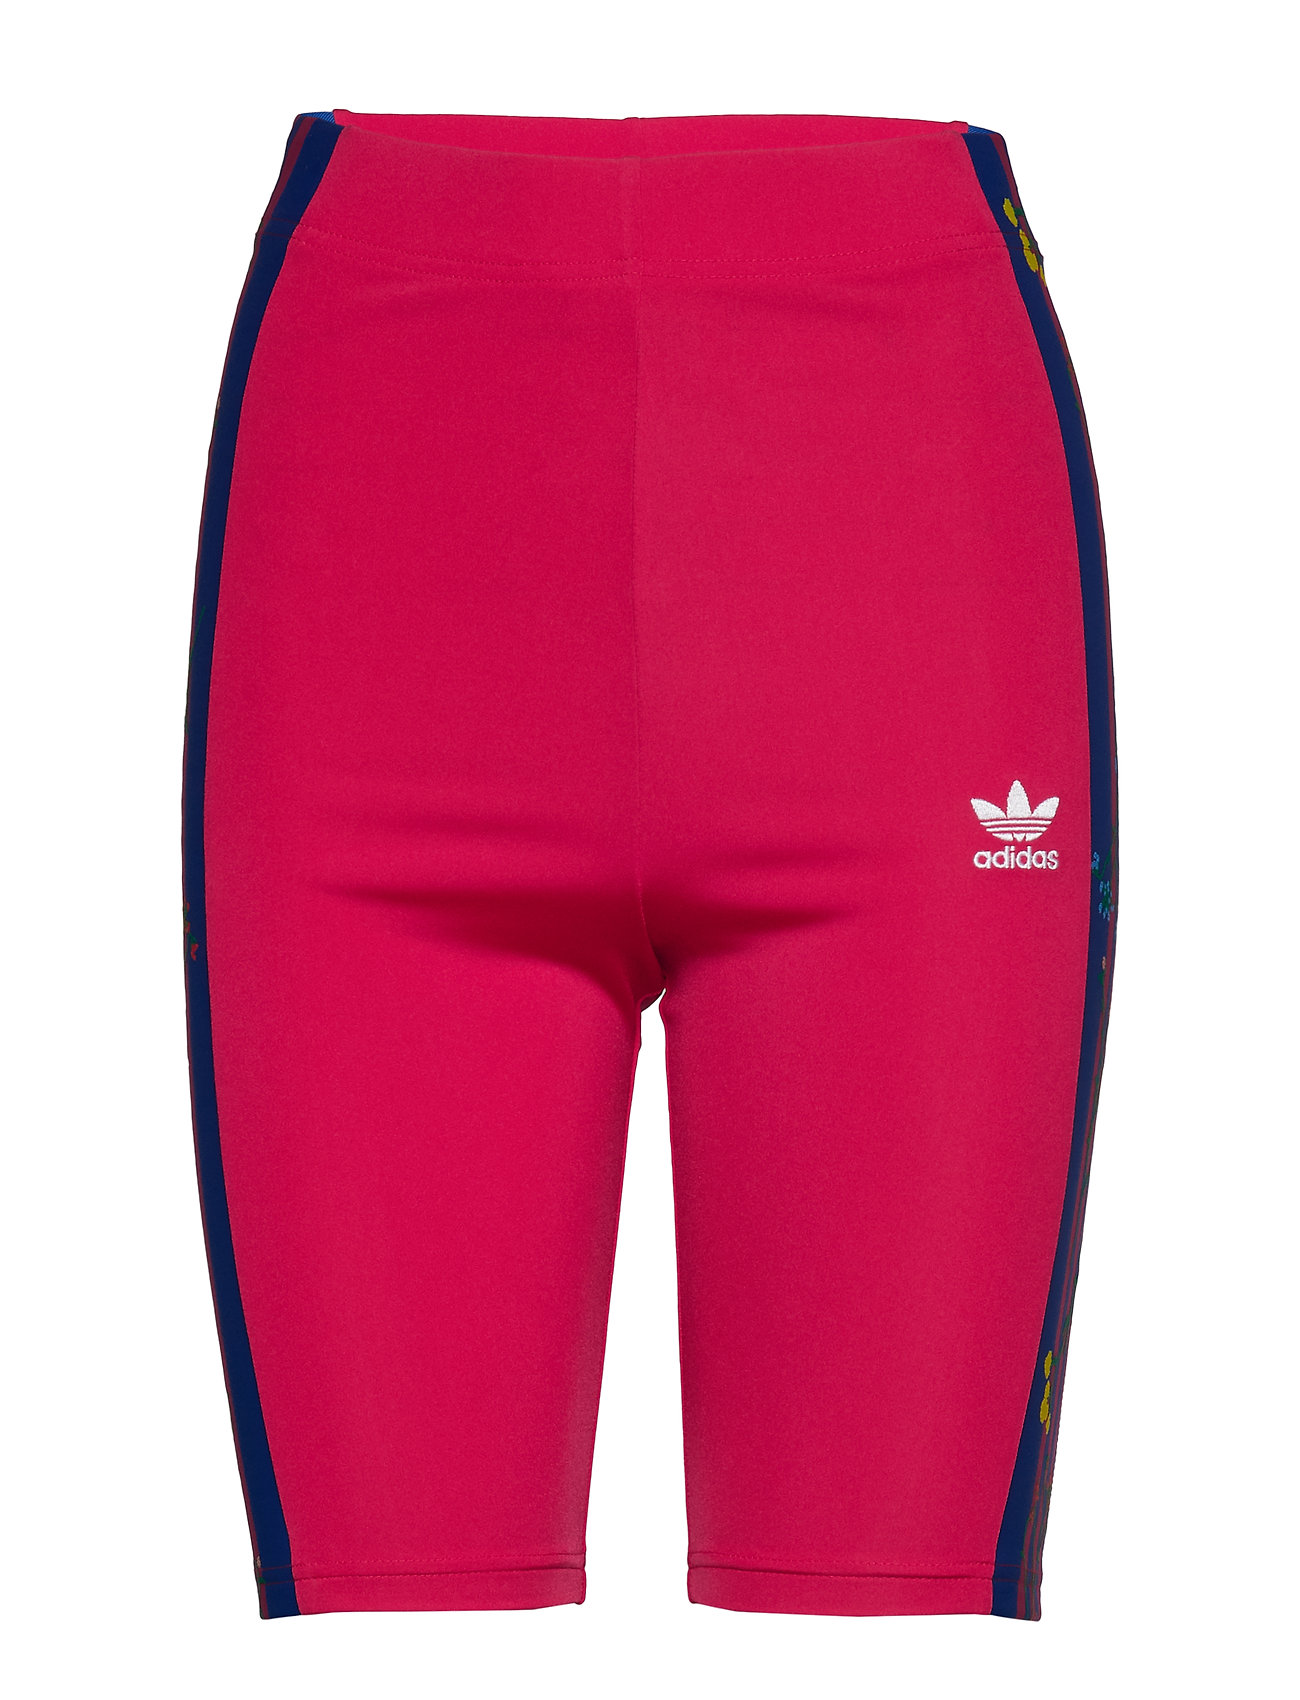 adidas Originals CYCLING SHORTS - ENEPNK